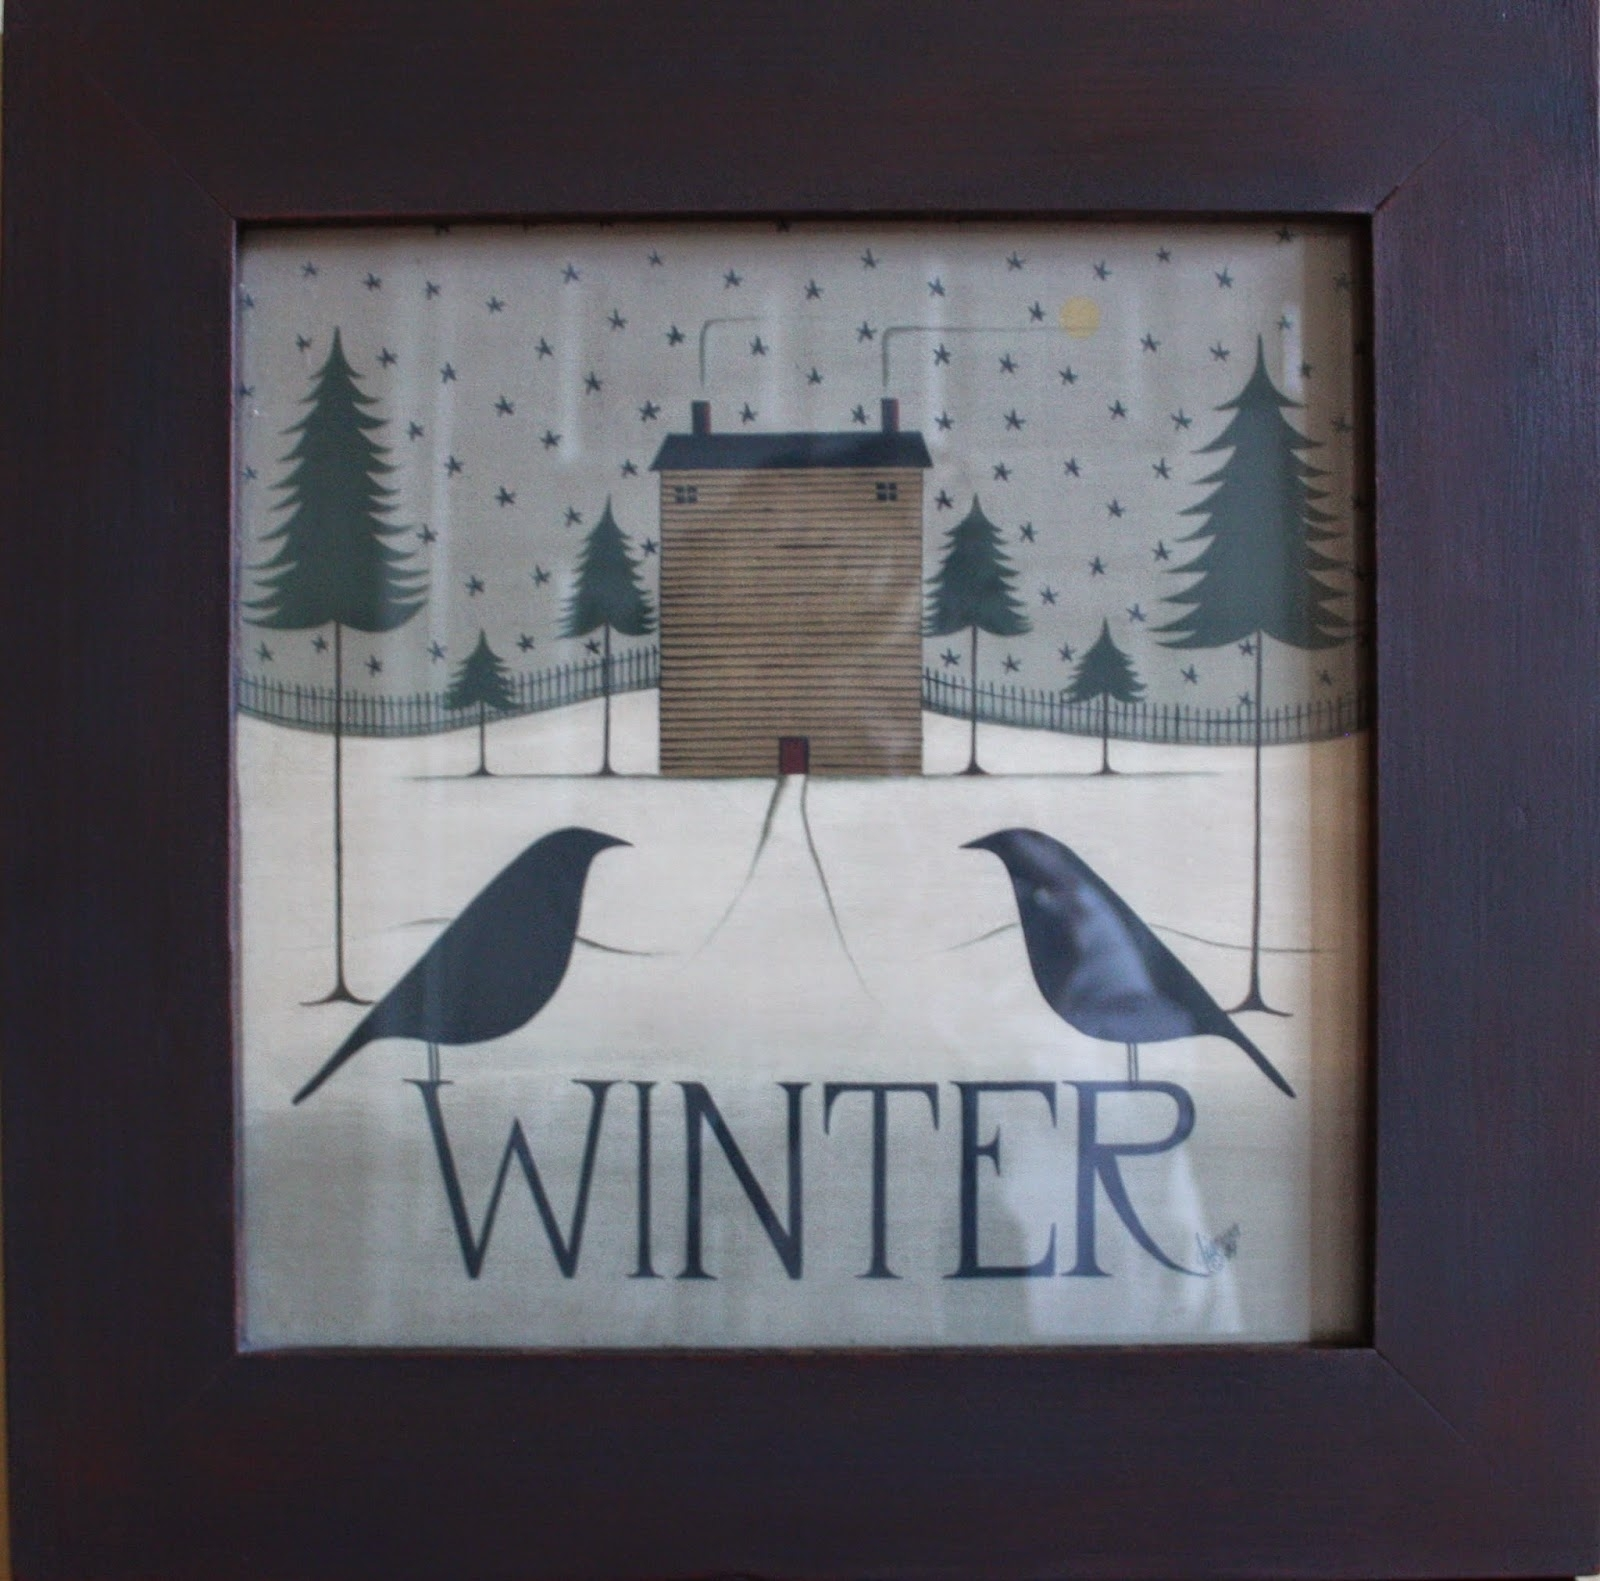 Four Seasons Folk Art (Sold) Pertaining To Most Popular Framed Folk Art Prints (View 7 of 15)